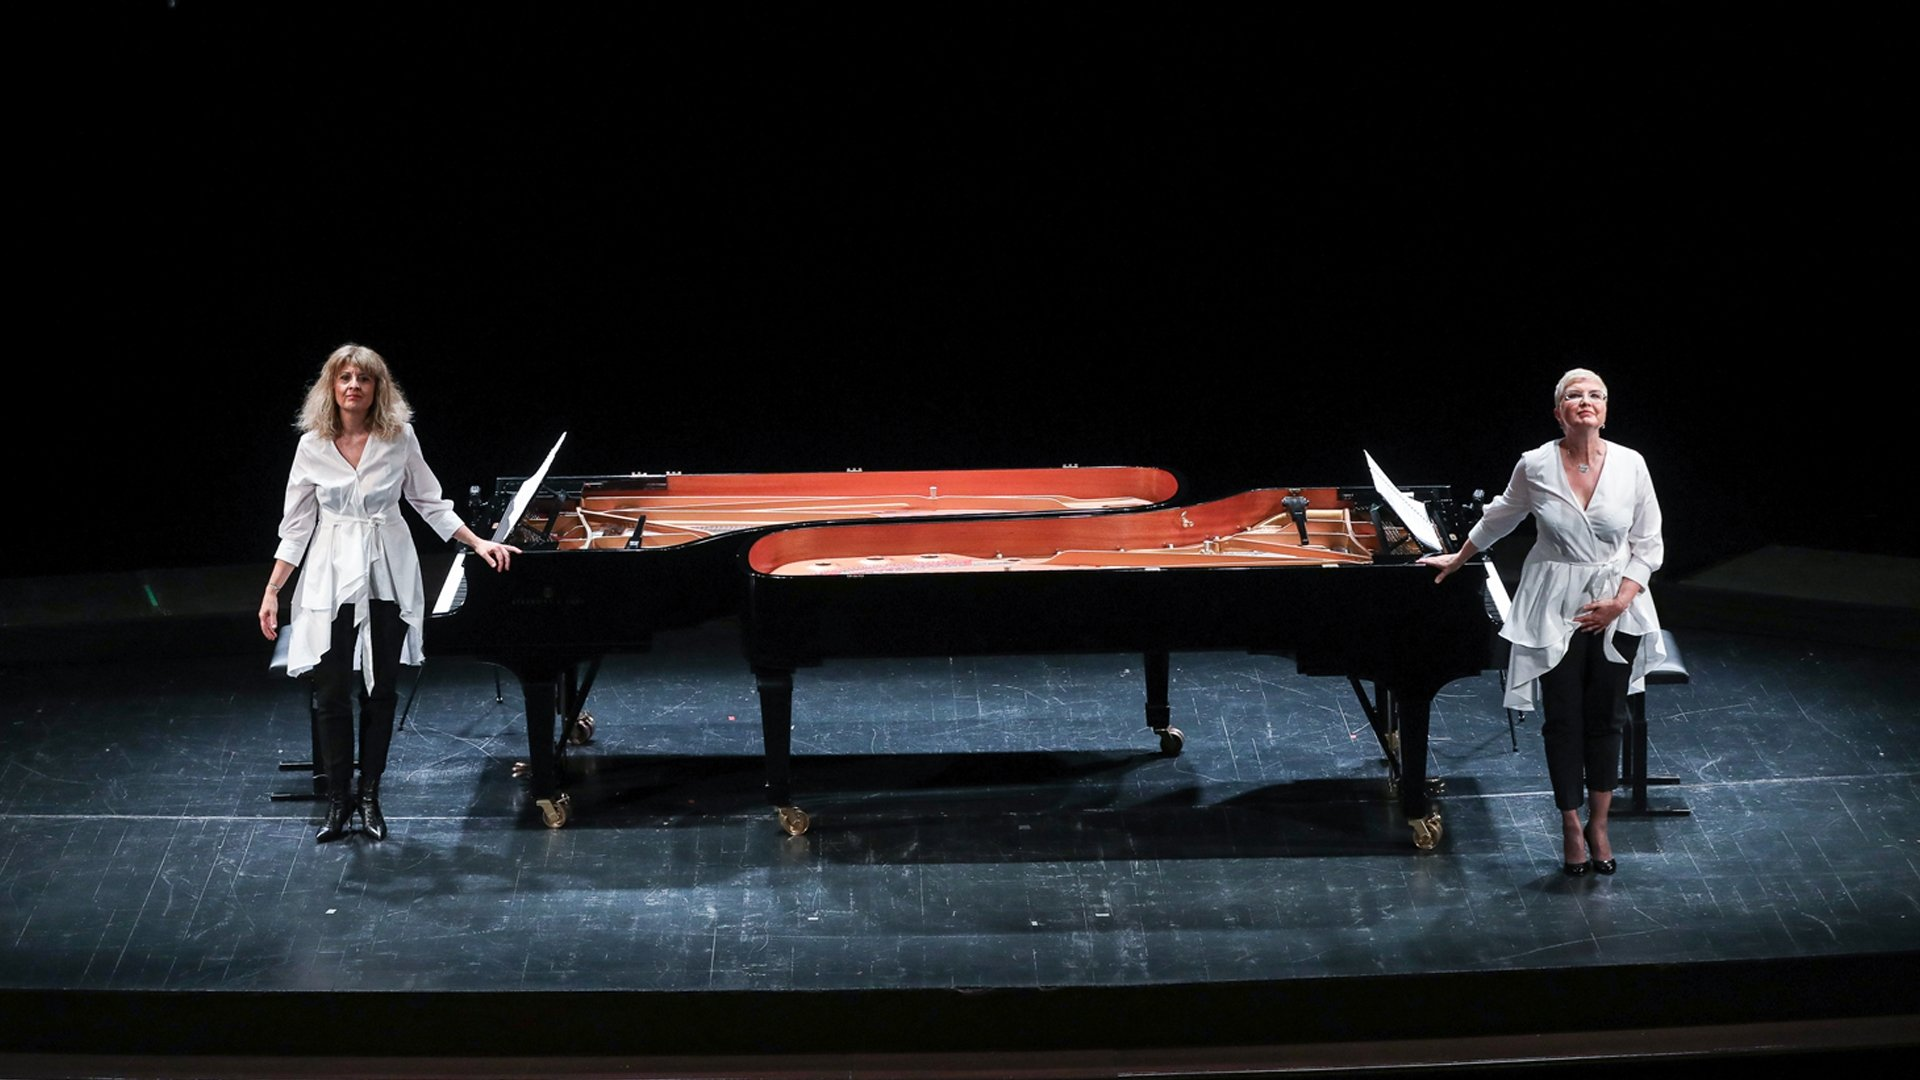 """Piano duo Ufuk & Bahar Dördüncü will present the project """"The Revolted Scene"""" as part of the 49th Istanbul Music Festival.  (Courtesy of IKSV)"""